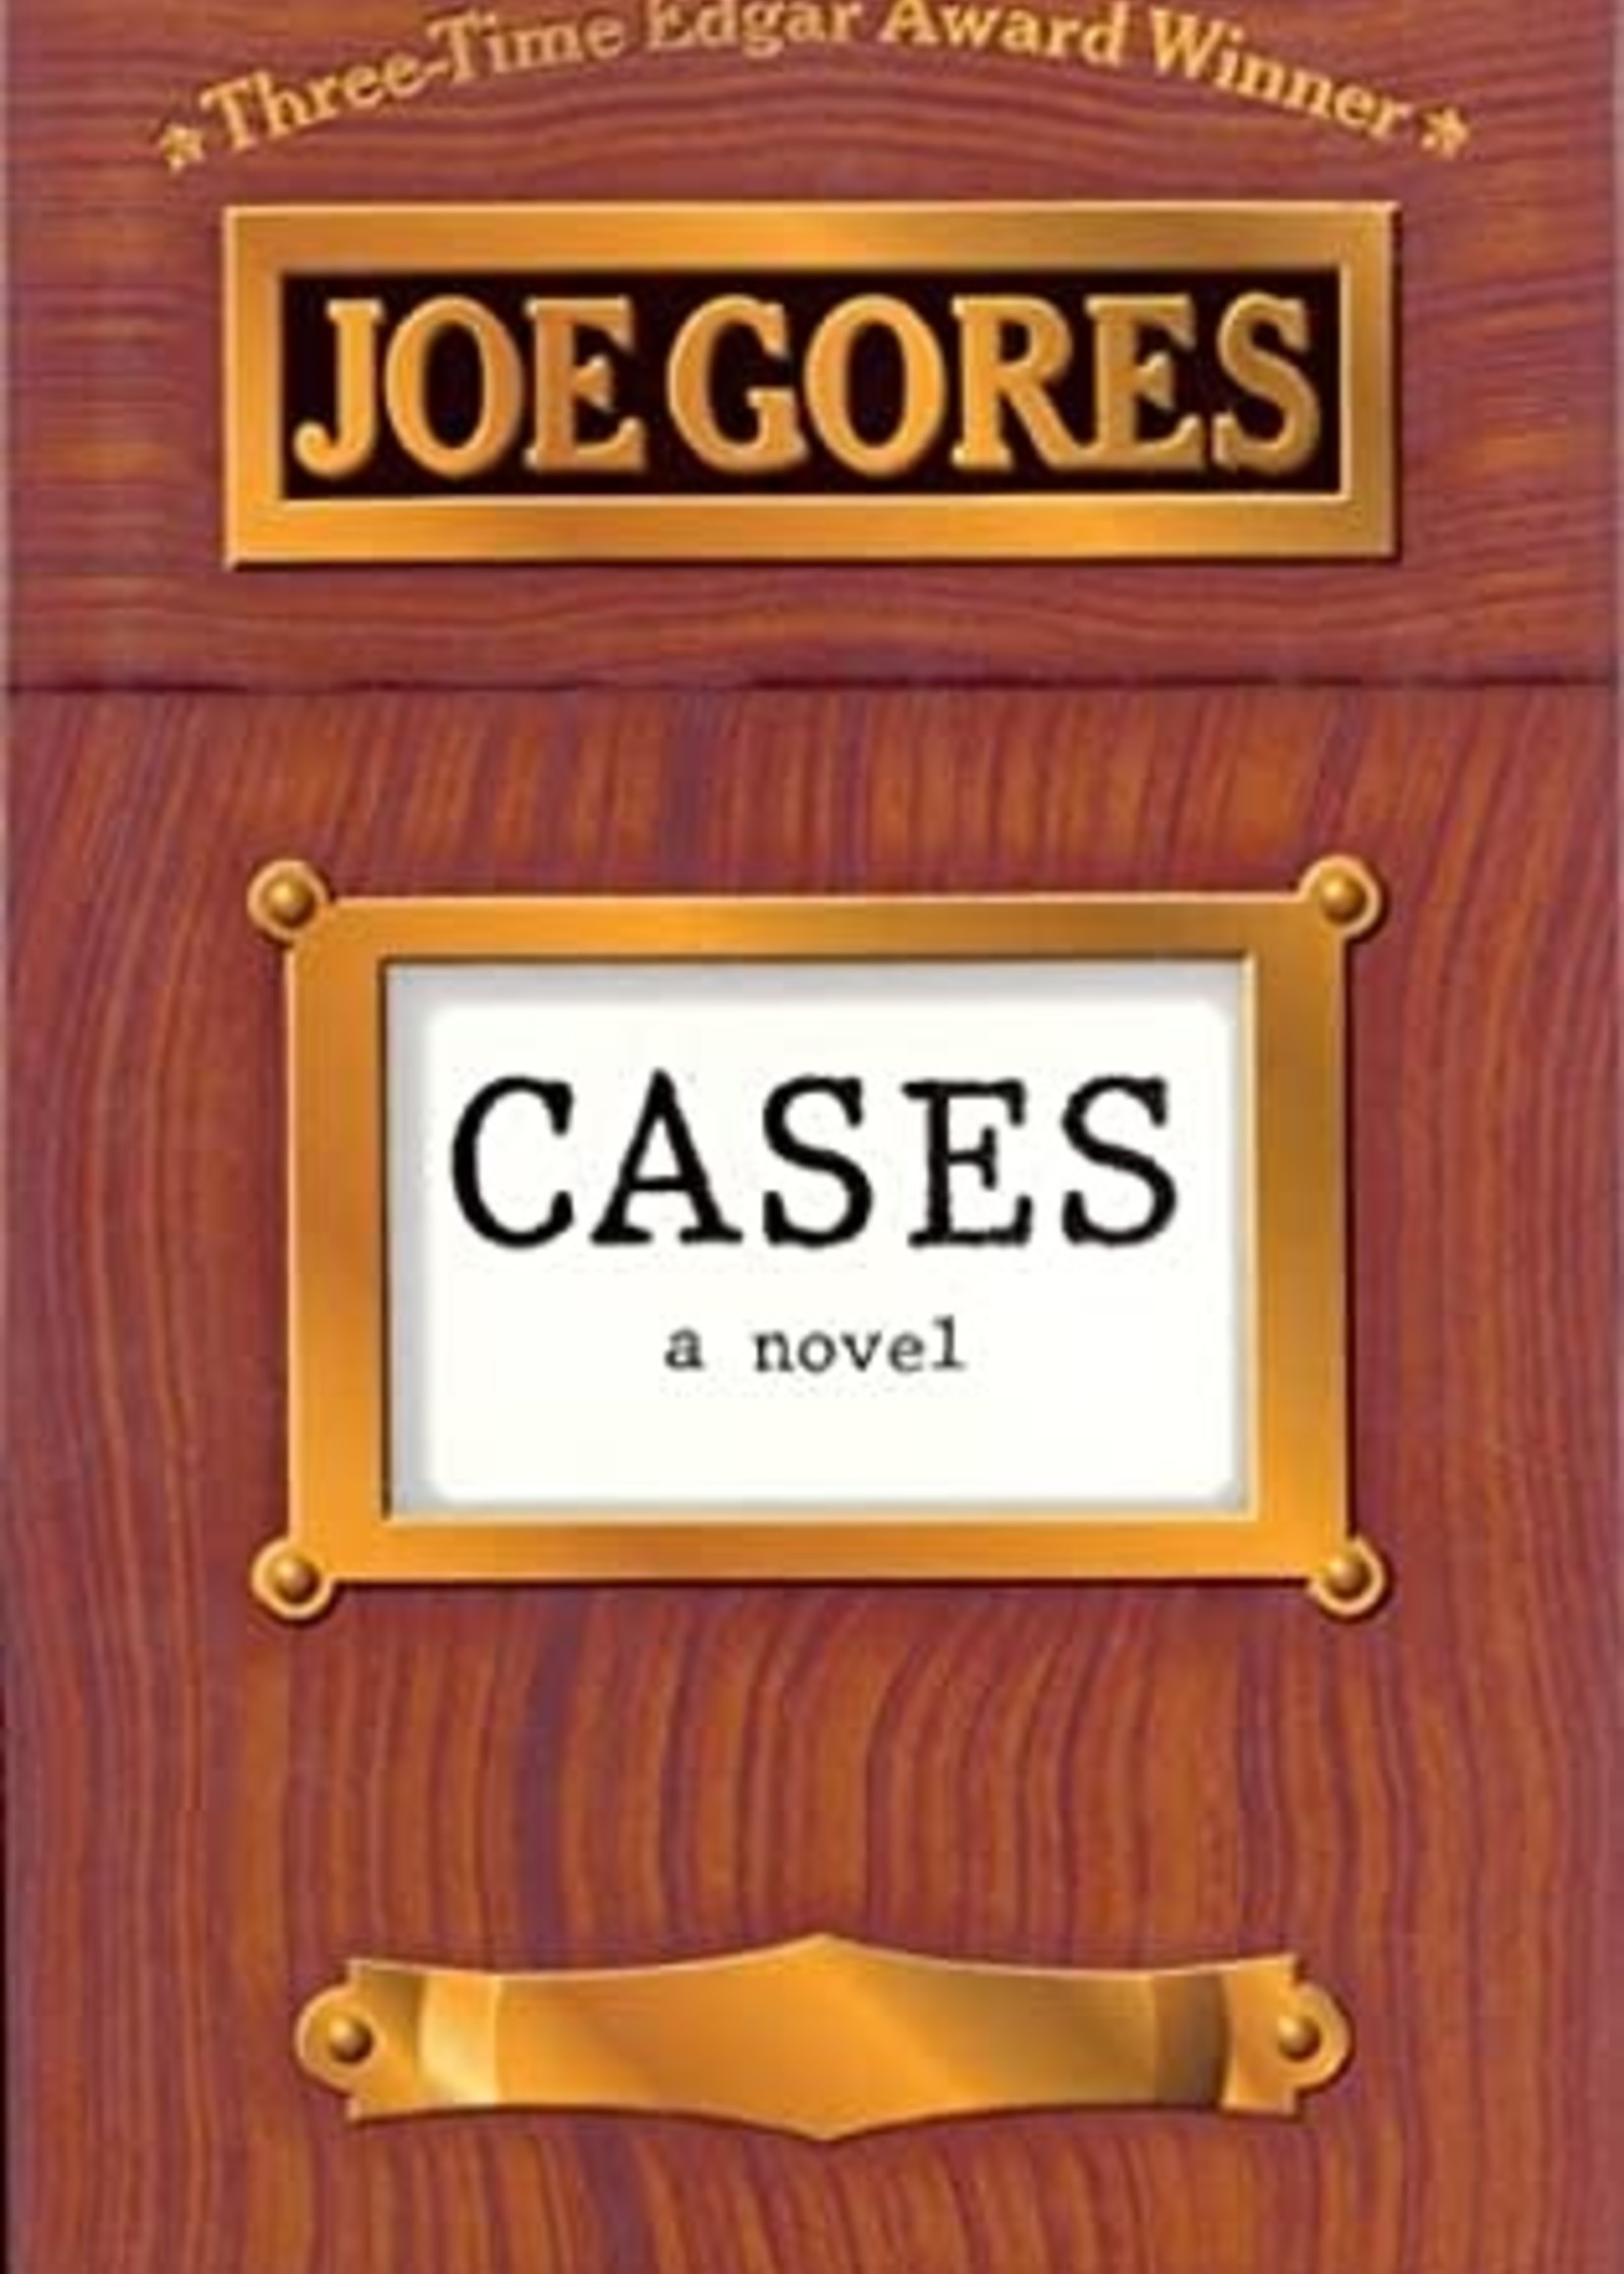 USED - Cases by Joe Gores